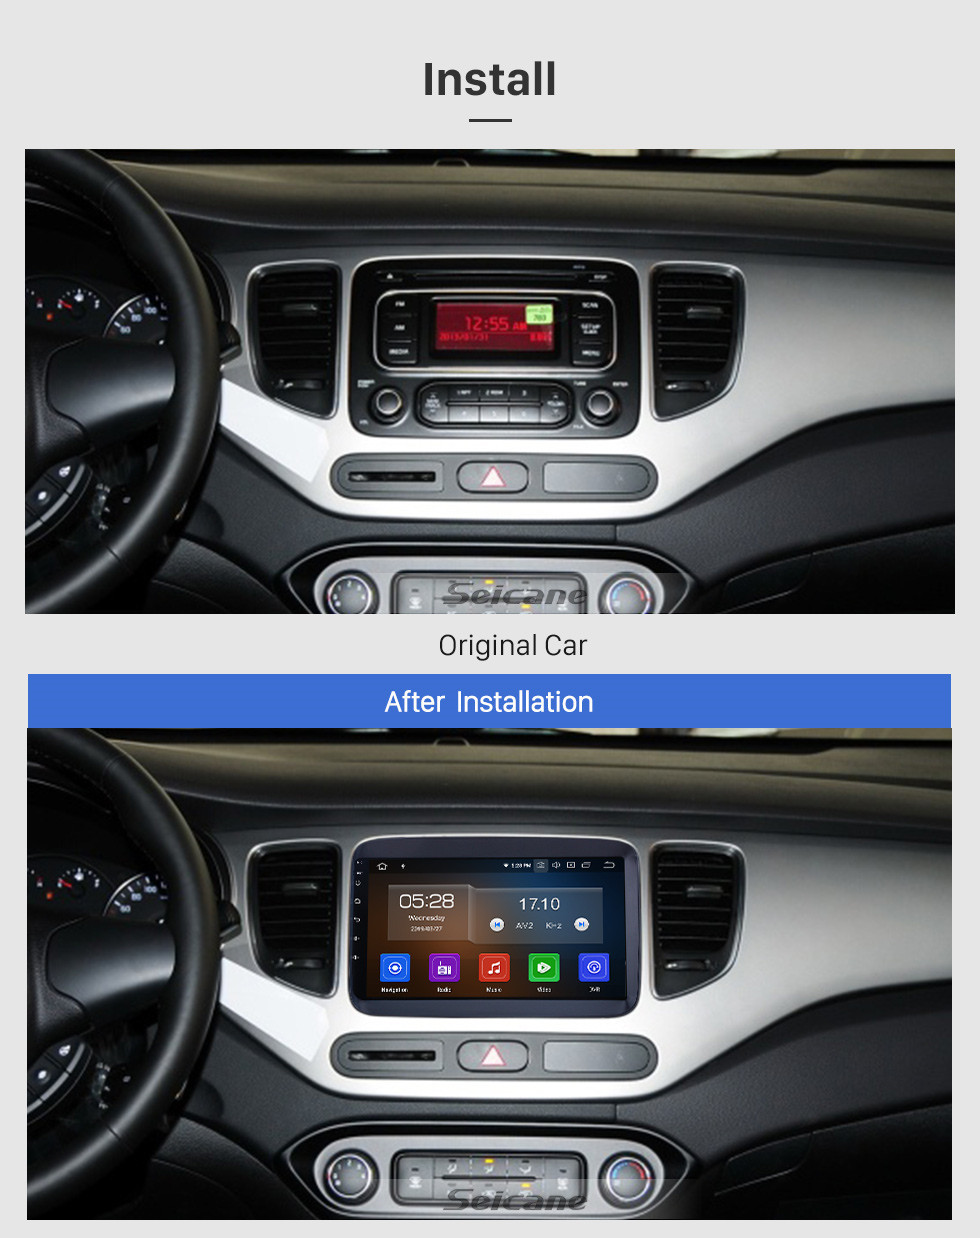 Seicane OEM 9 inch Android 10.0 for 2014 2015 2016 2017 Kia Carens Radio Bluetooth HD Touchscreen GPS Navigation System Carplay support DVR